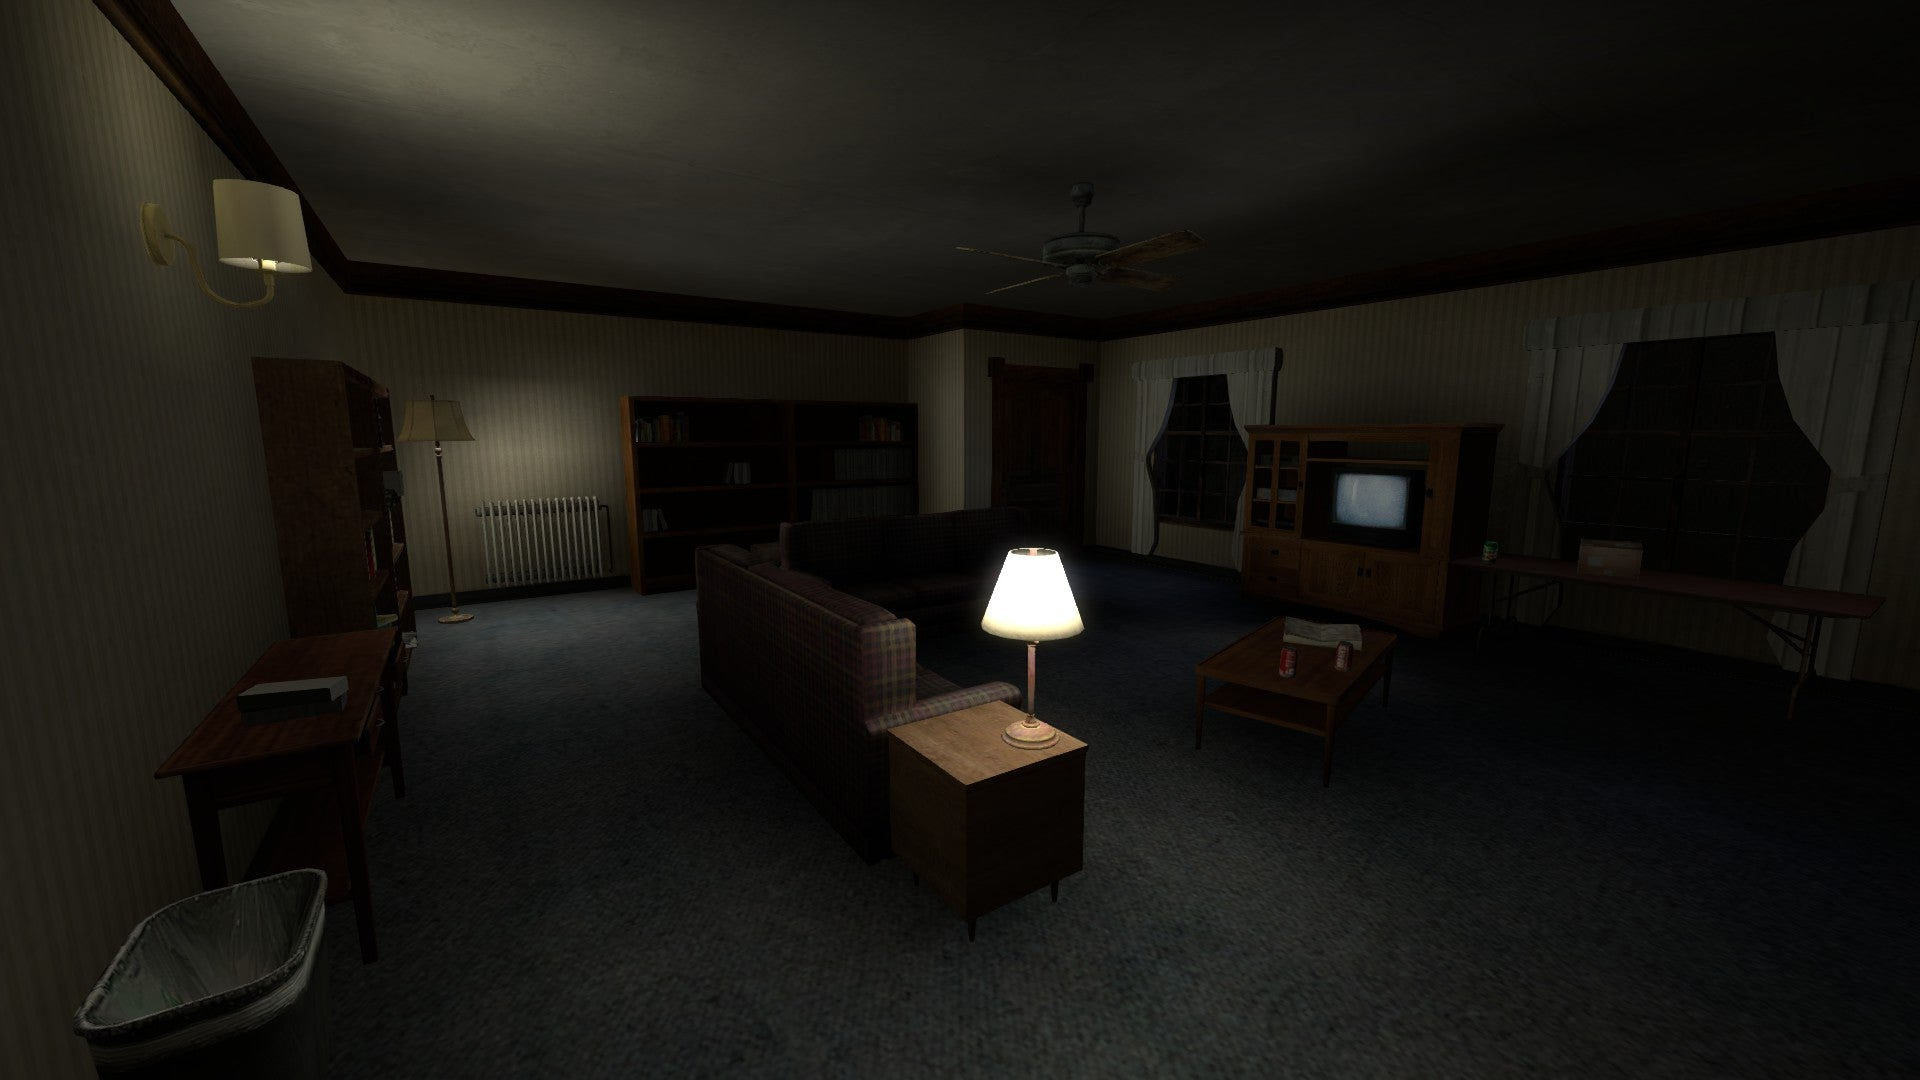 Gone Home Map For Counter-Strike Lets You Defuse Bombs, Emotions